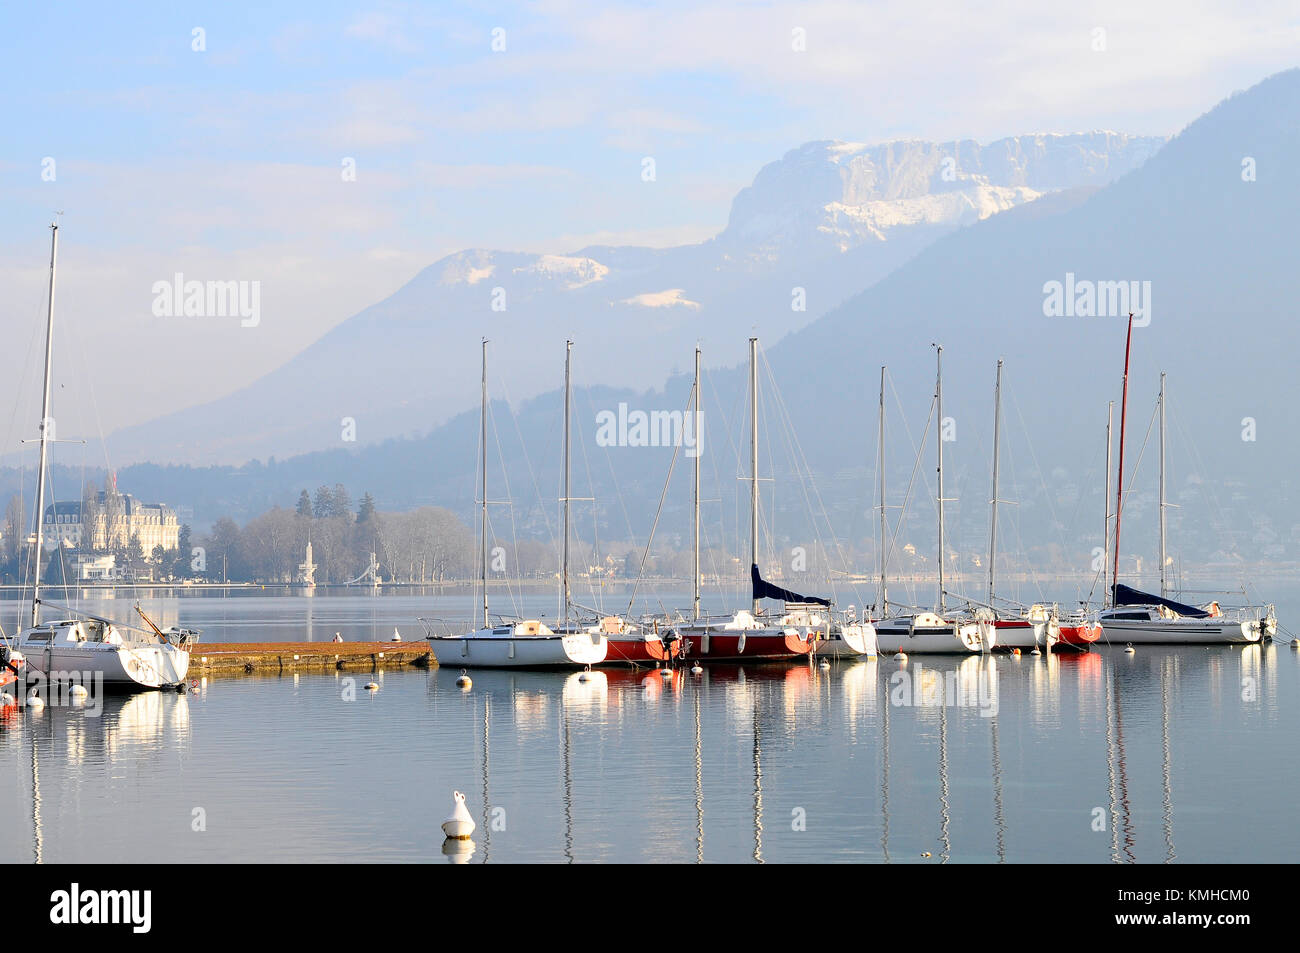 Marina and Boats on Annecy lake, France - Stock Image